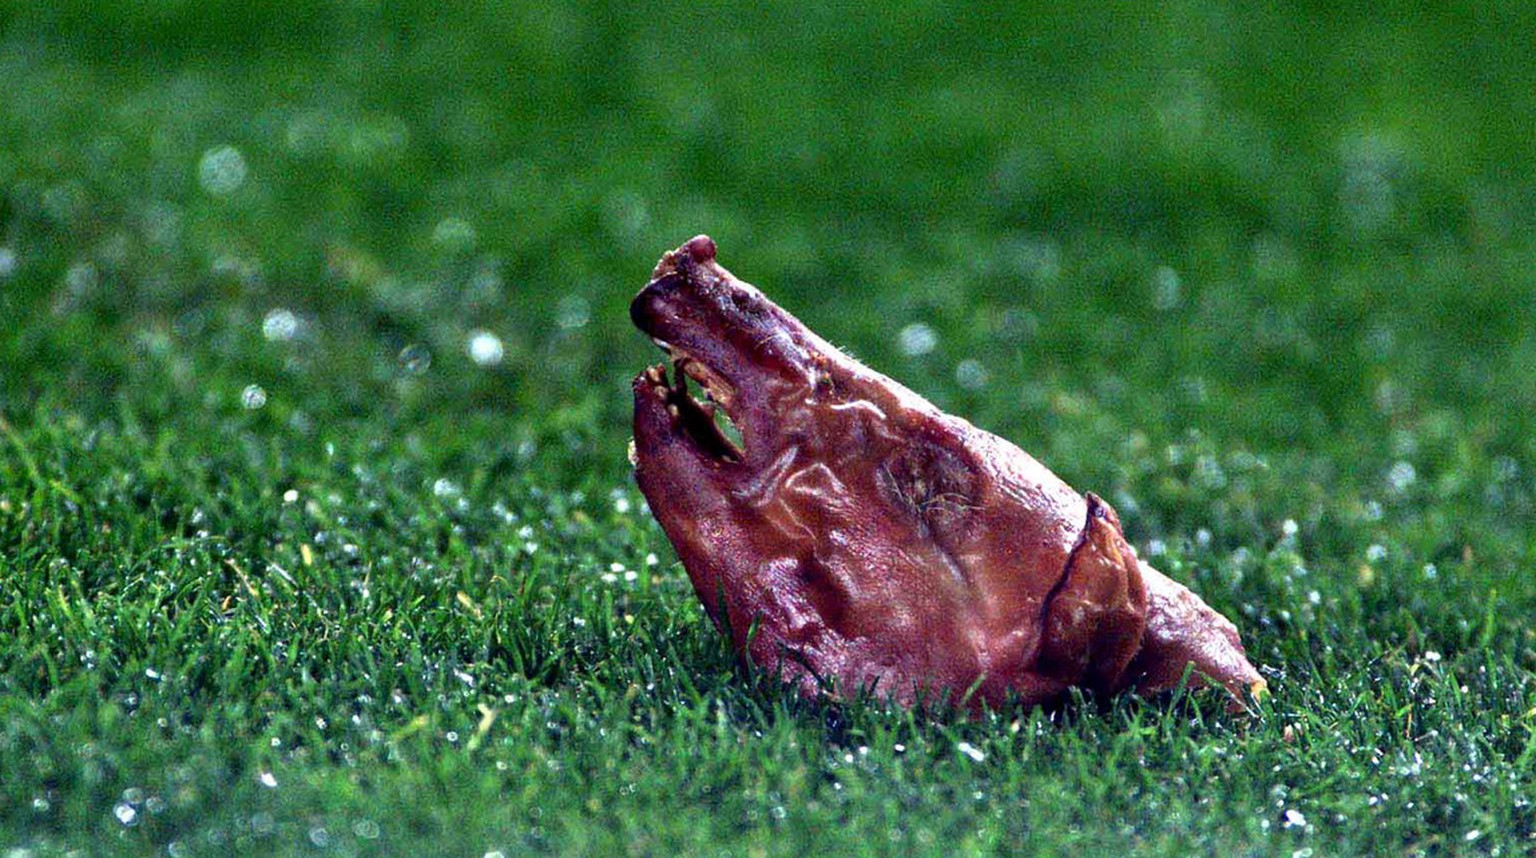 A pigs head is seen on the pitch after it was thrown at Real Madrid's Portugues player Luis Figo during a Spanish league match against Barcelona in Barcelona, Spain Saturday Nov. 23, 2002. Figo, a former Barcelona player was subjected to continious abuse from Barcelona fans and the match was halted for 13 minutes after objects were hurled at him from the stands. (KEYSTONE/AP Photo/Courtesy of AS Newspaper)  === SPAIN OUT ===